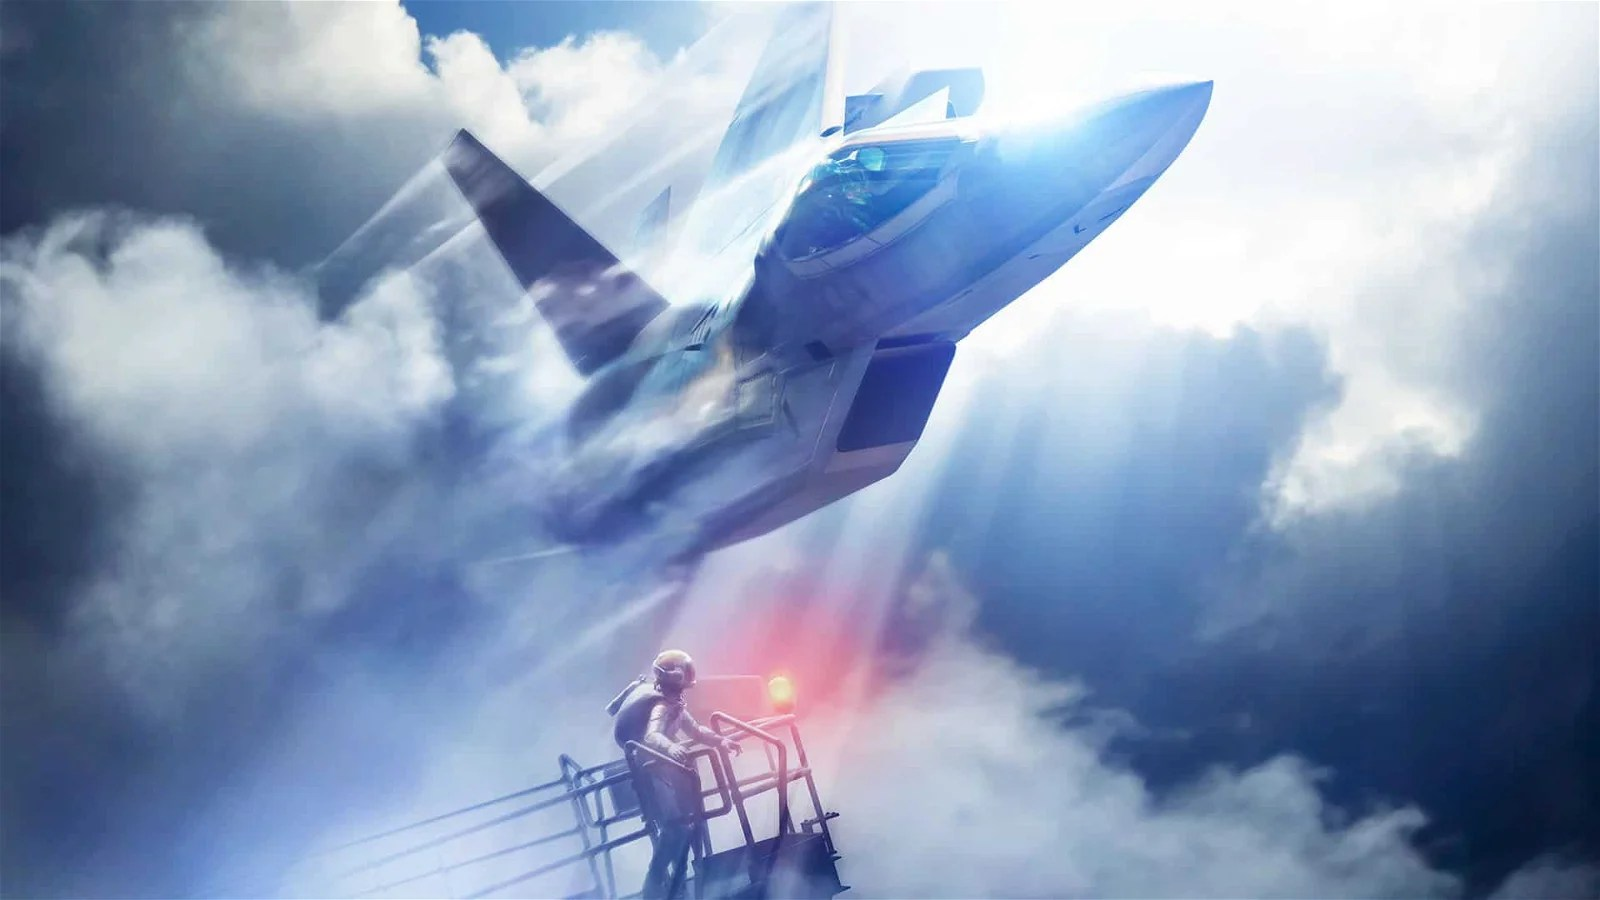 Arsenal Live Wallpaper Hd Ace Combat 7 Skies Unknown Ps4 Review Cgmagazine